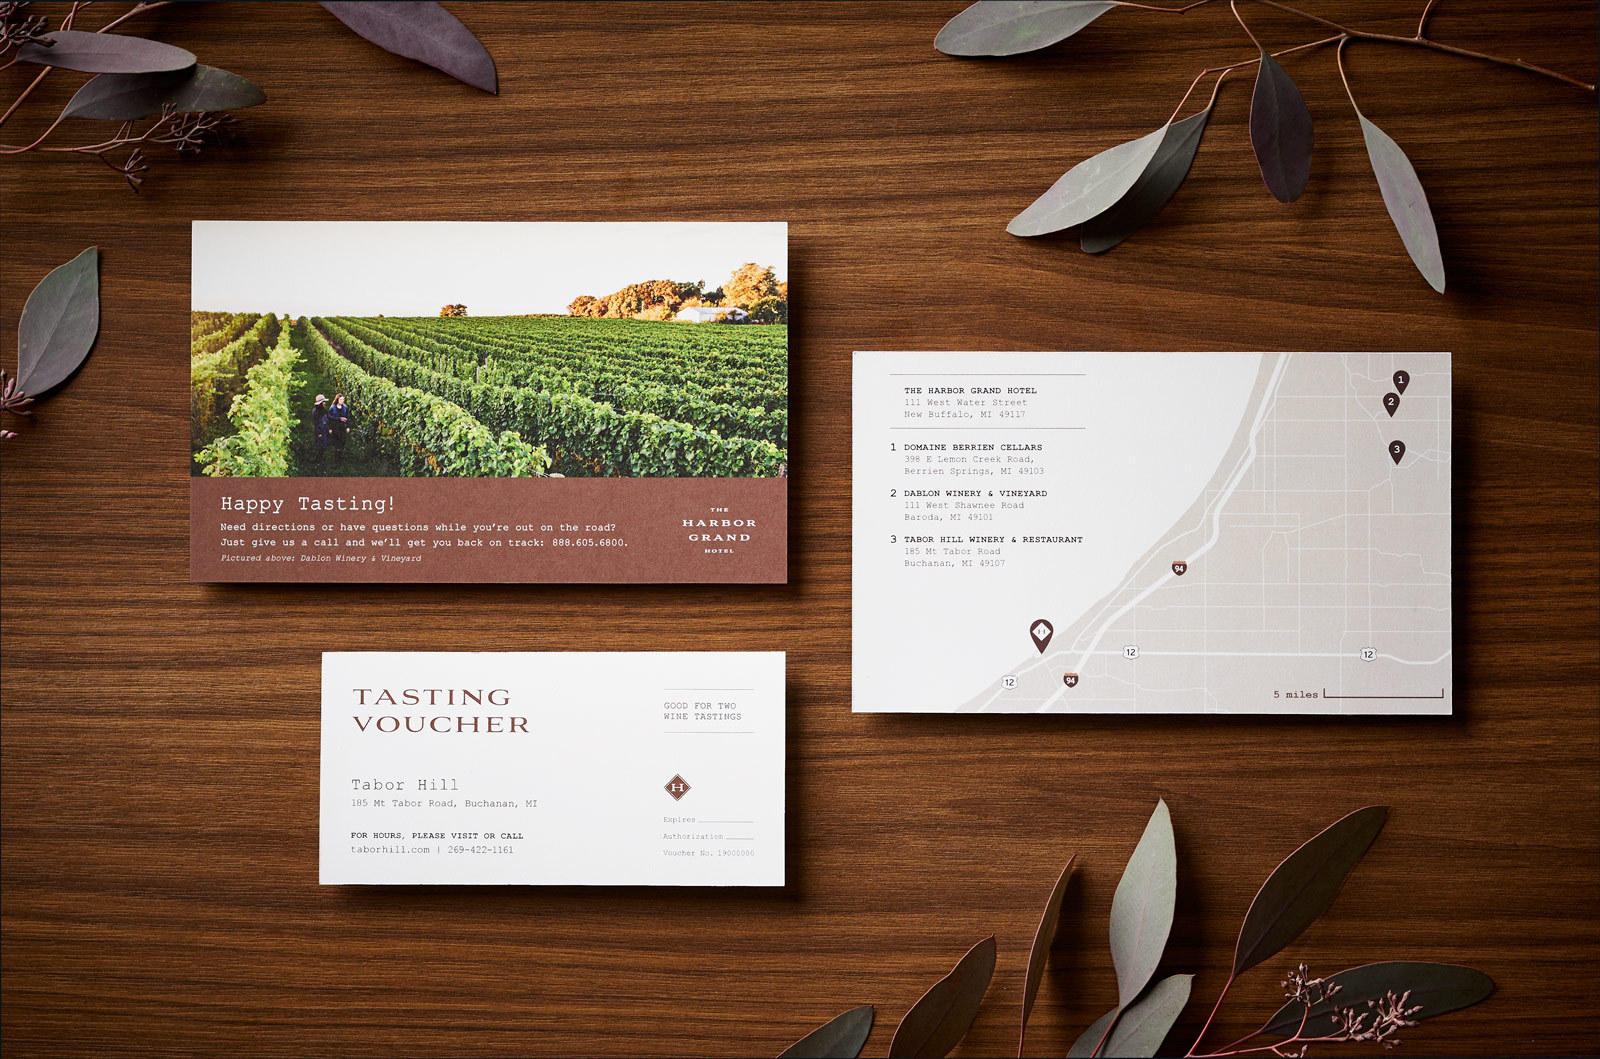 wine tasting vouchers and map on a wood background